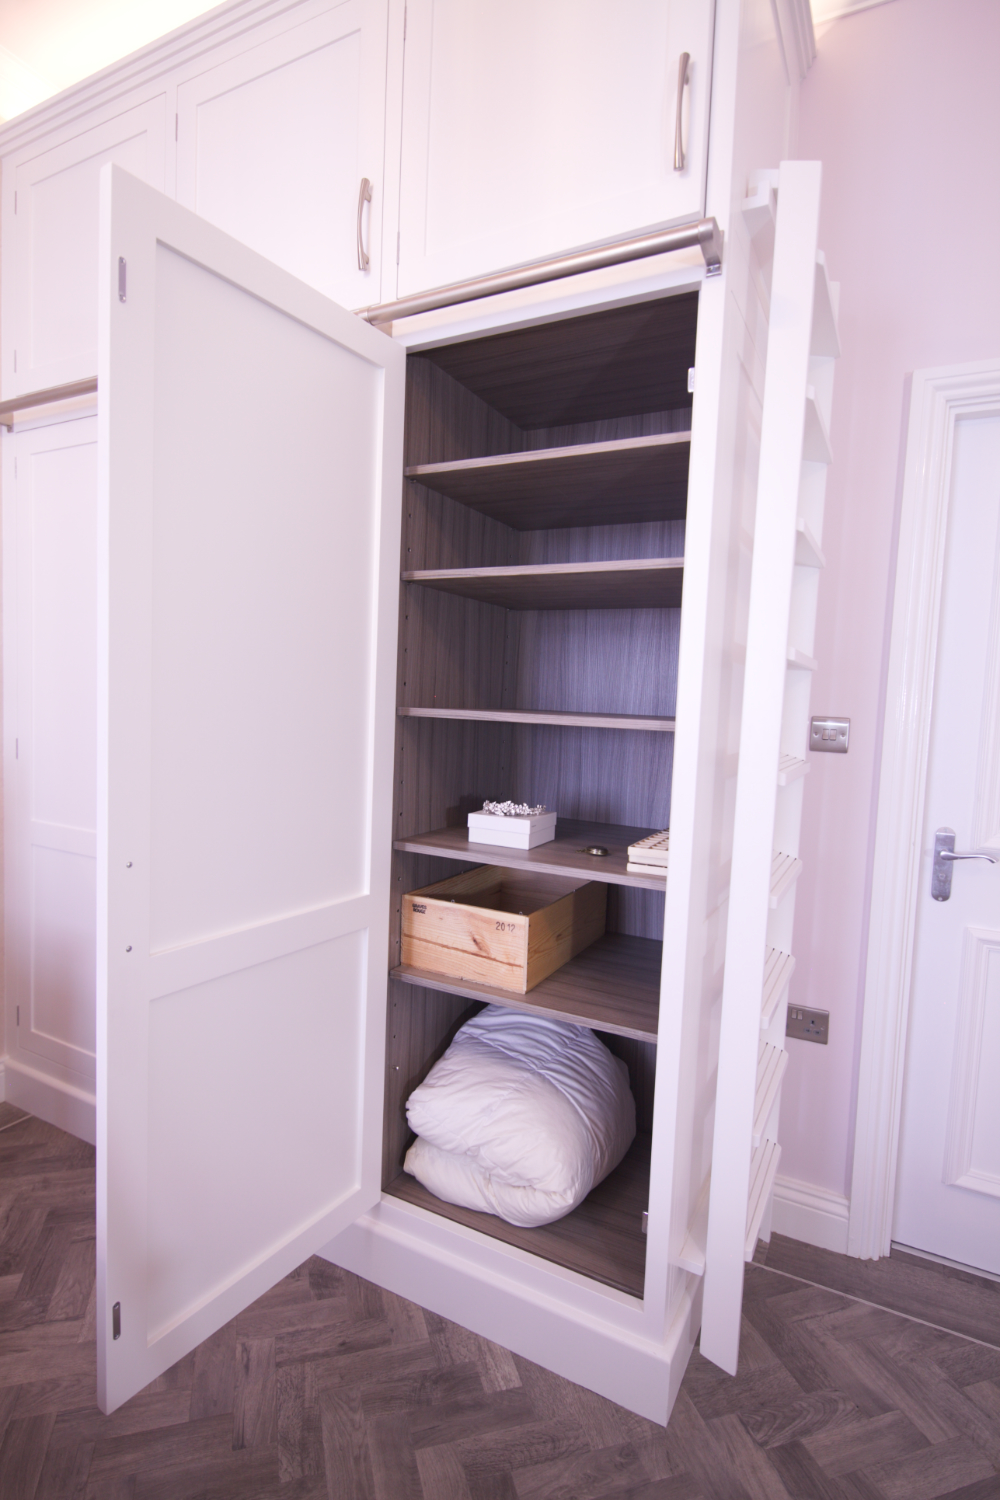 Bespoke hand painted wardrobes